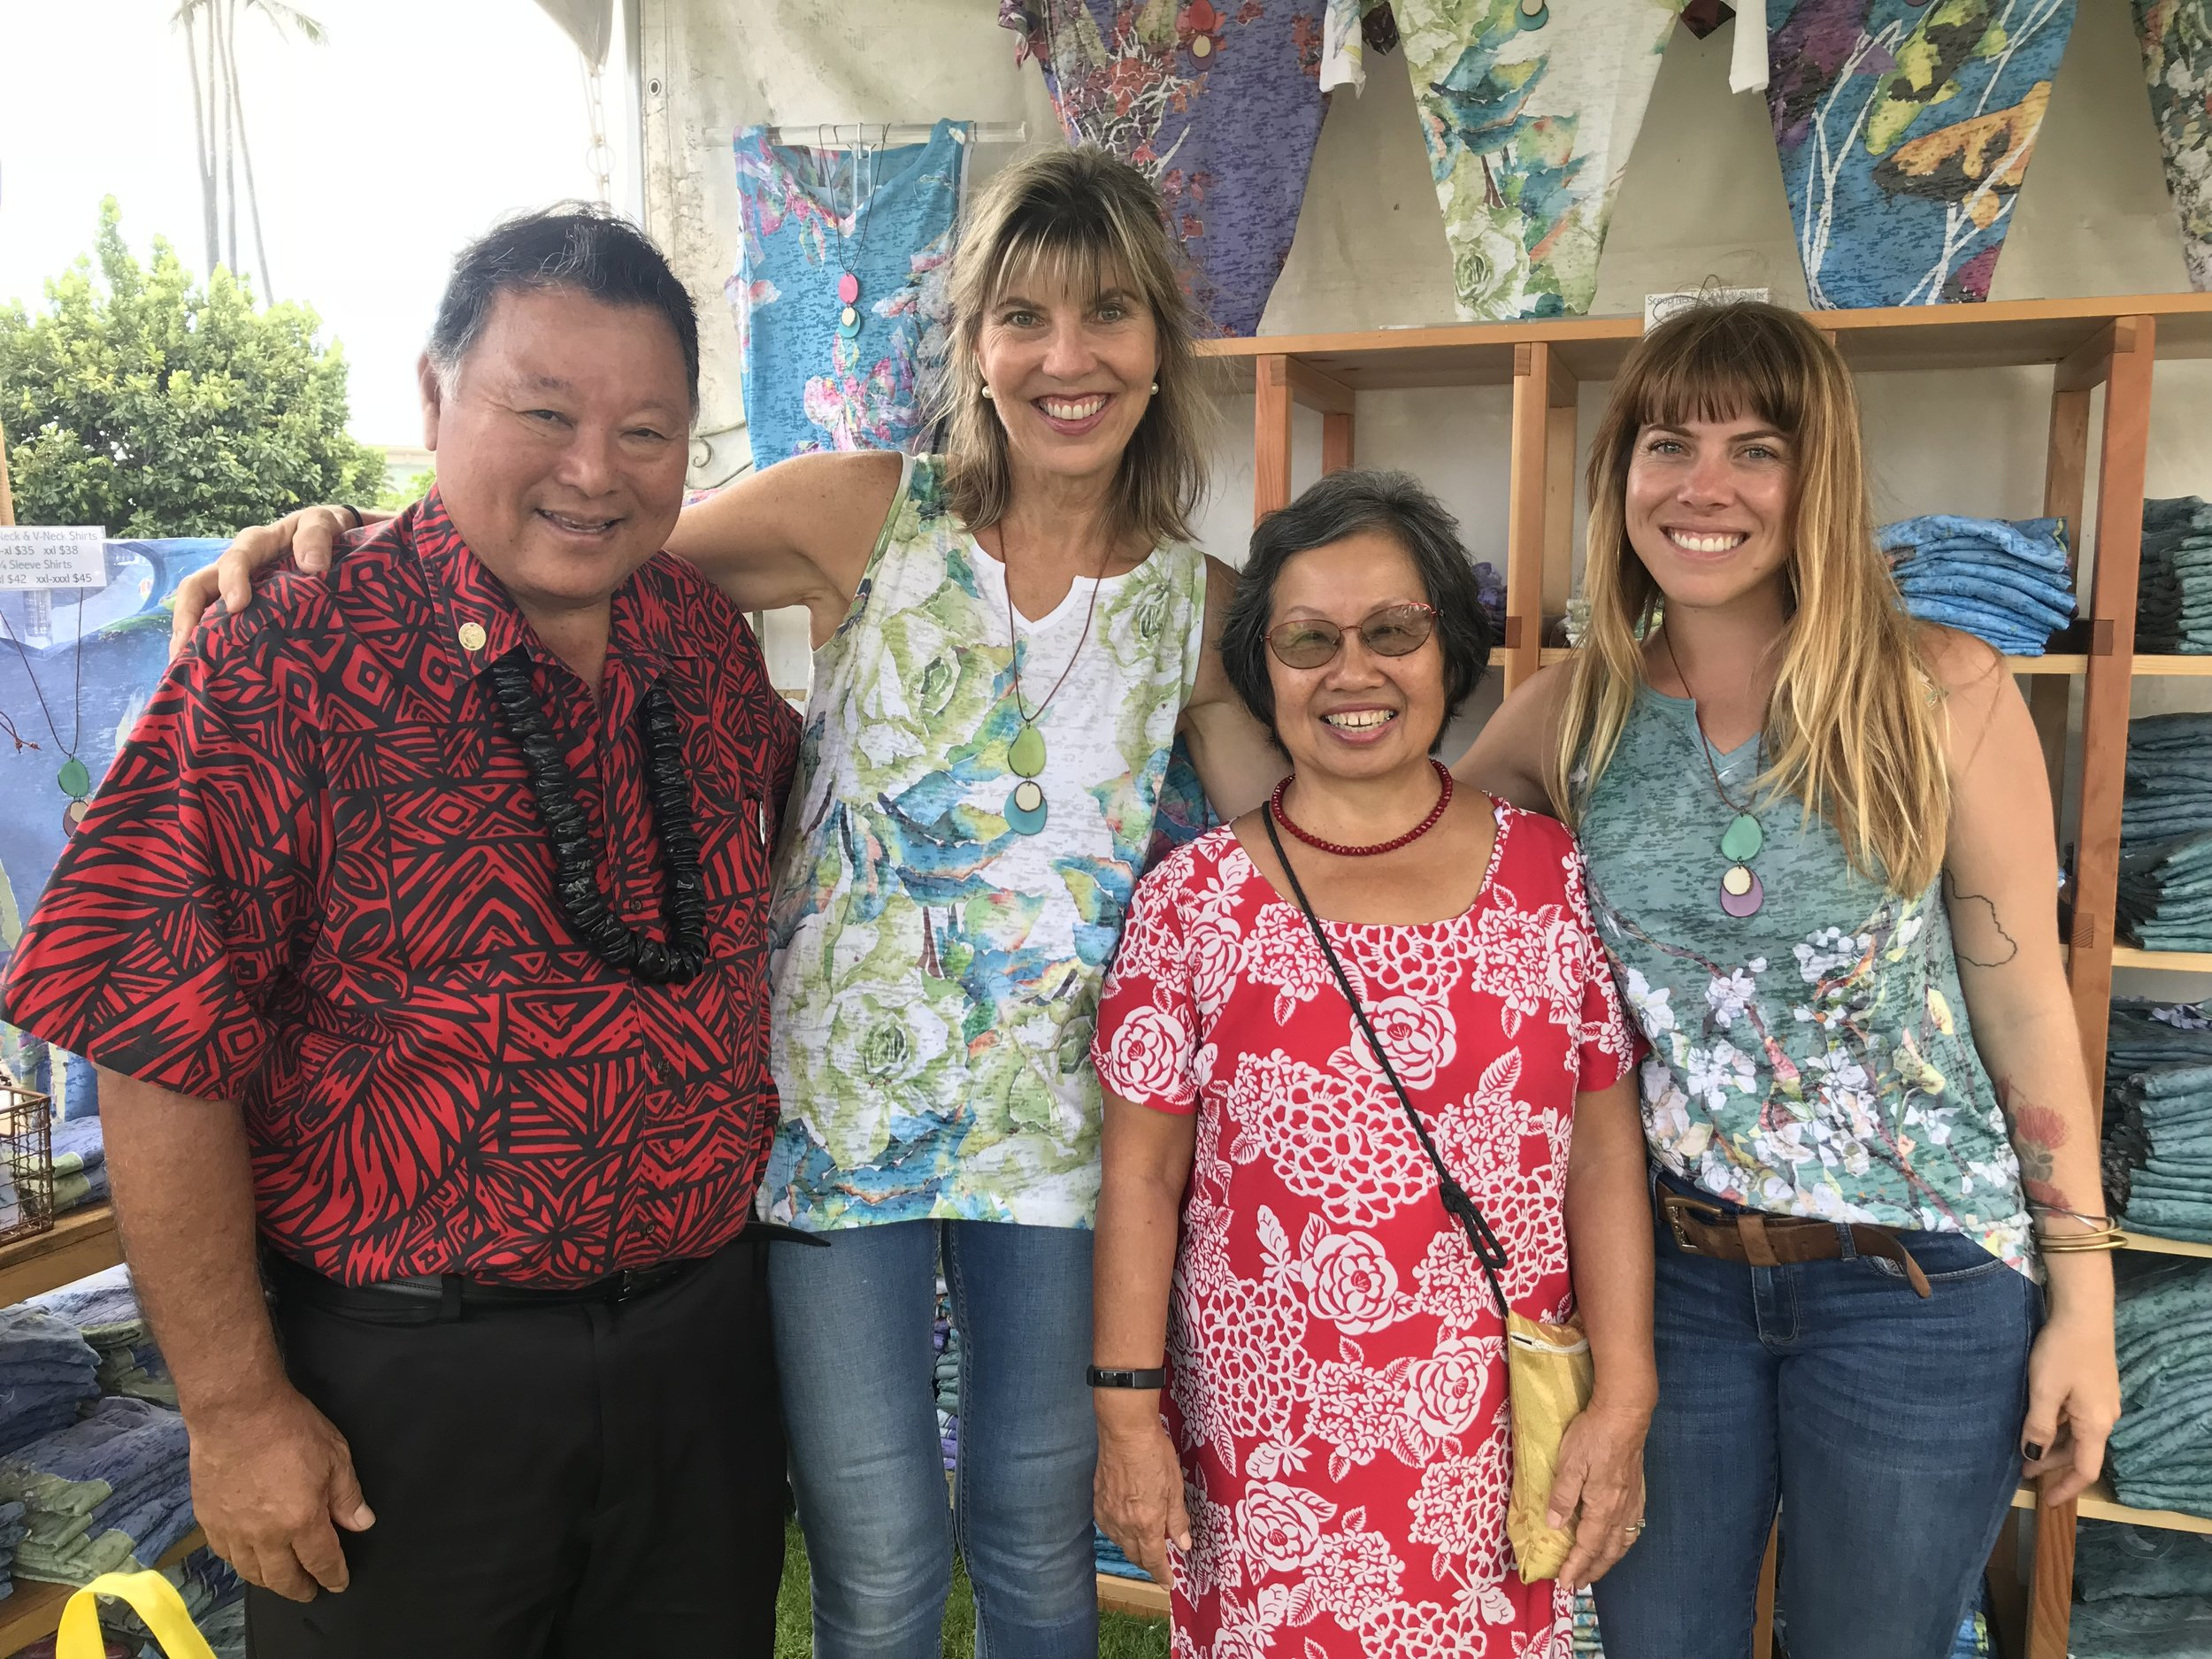 Maui County mayor Arakawa, mrs. arakawa, sherri, and hailey at the Made in maui county festival 2018